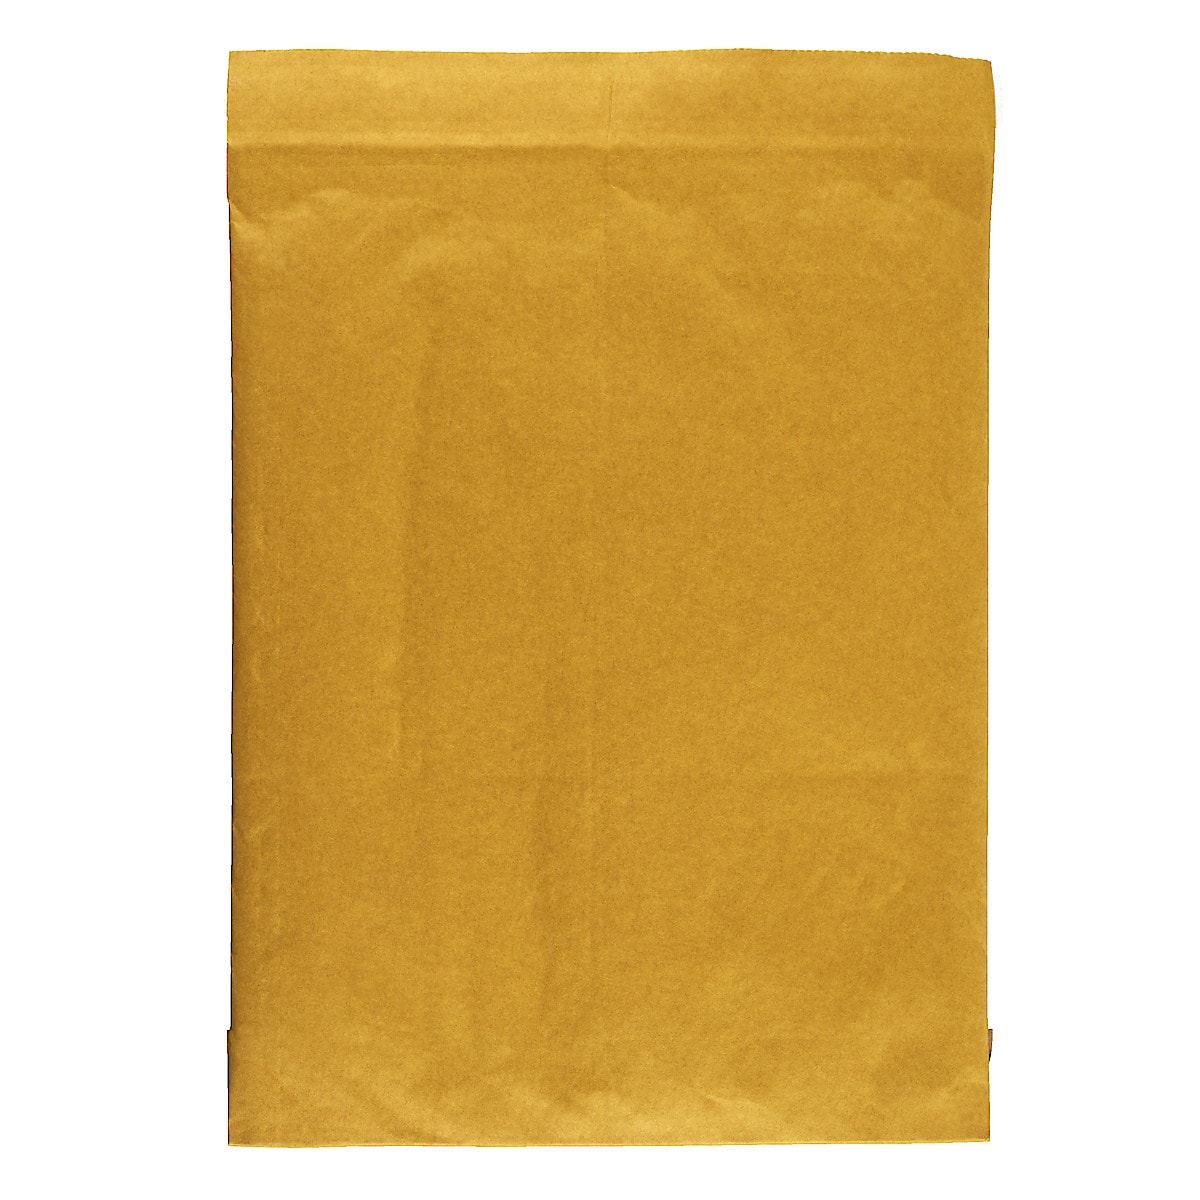 Jiffy Bags No 5, Pack of 100